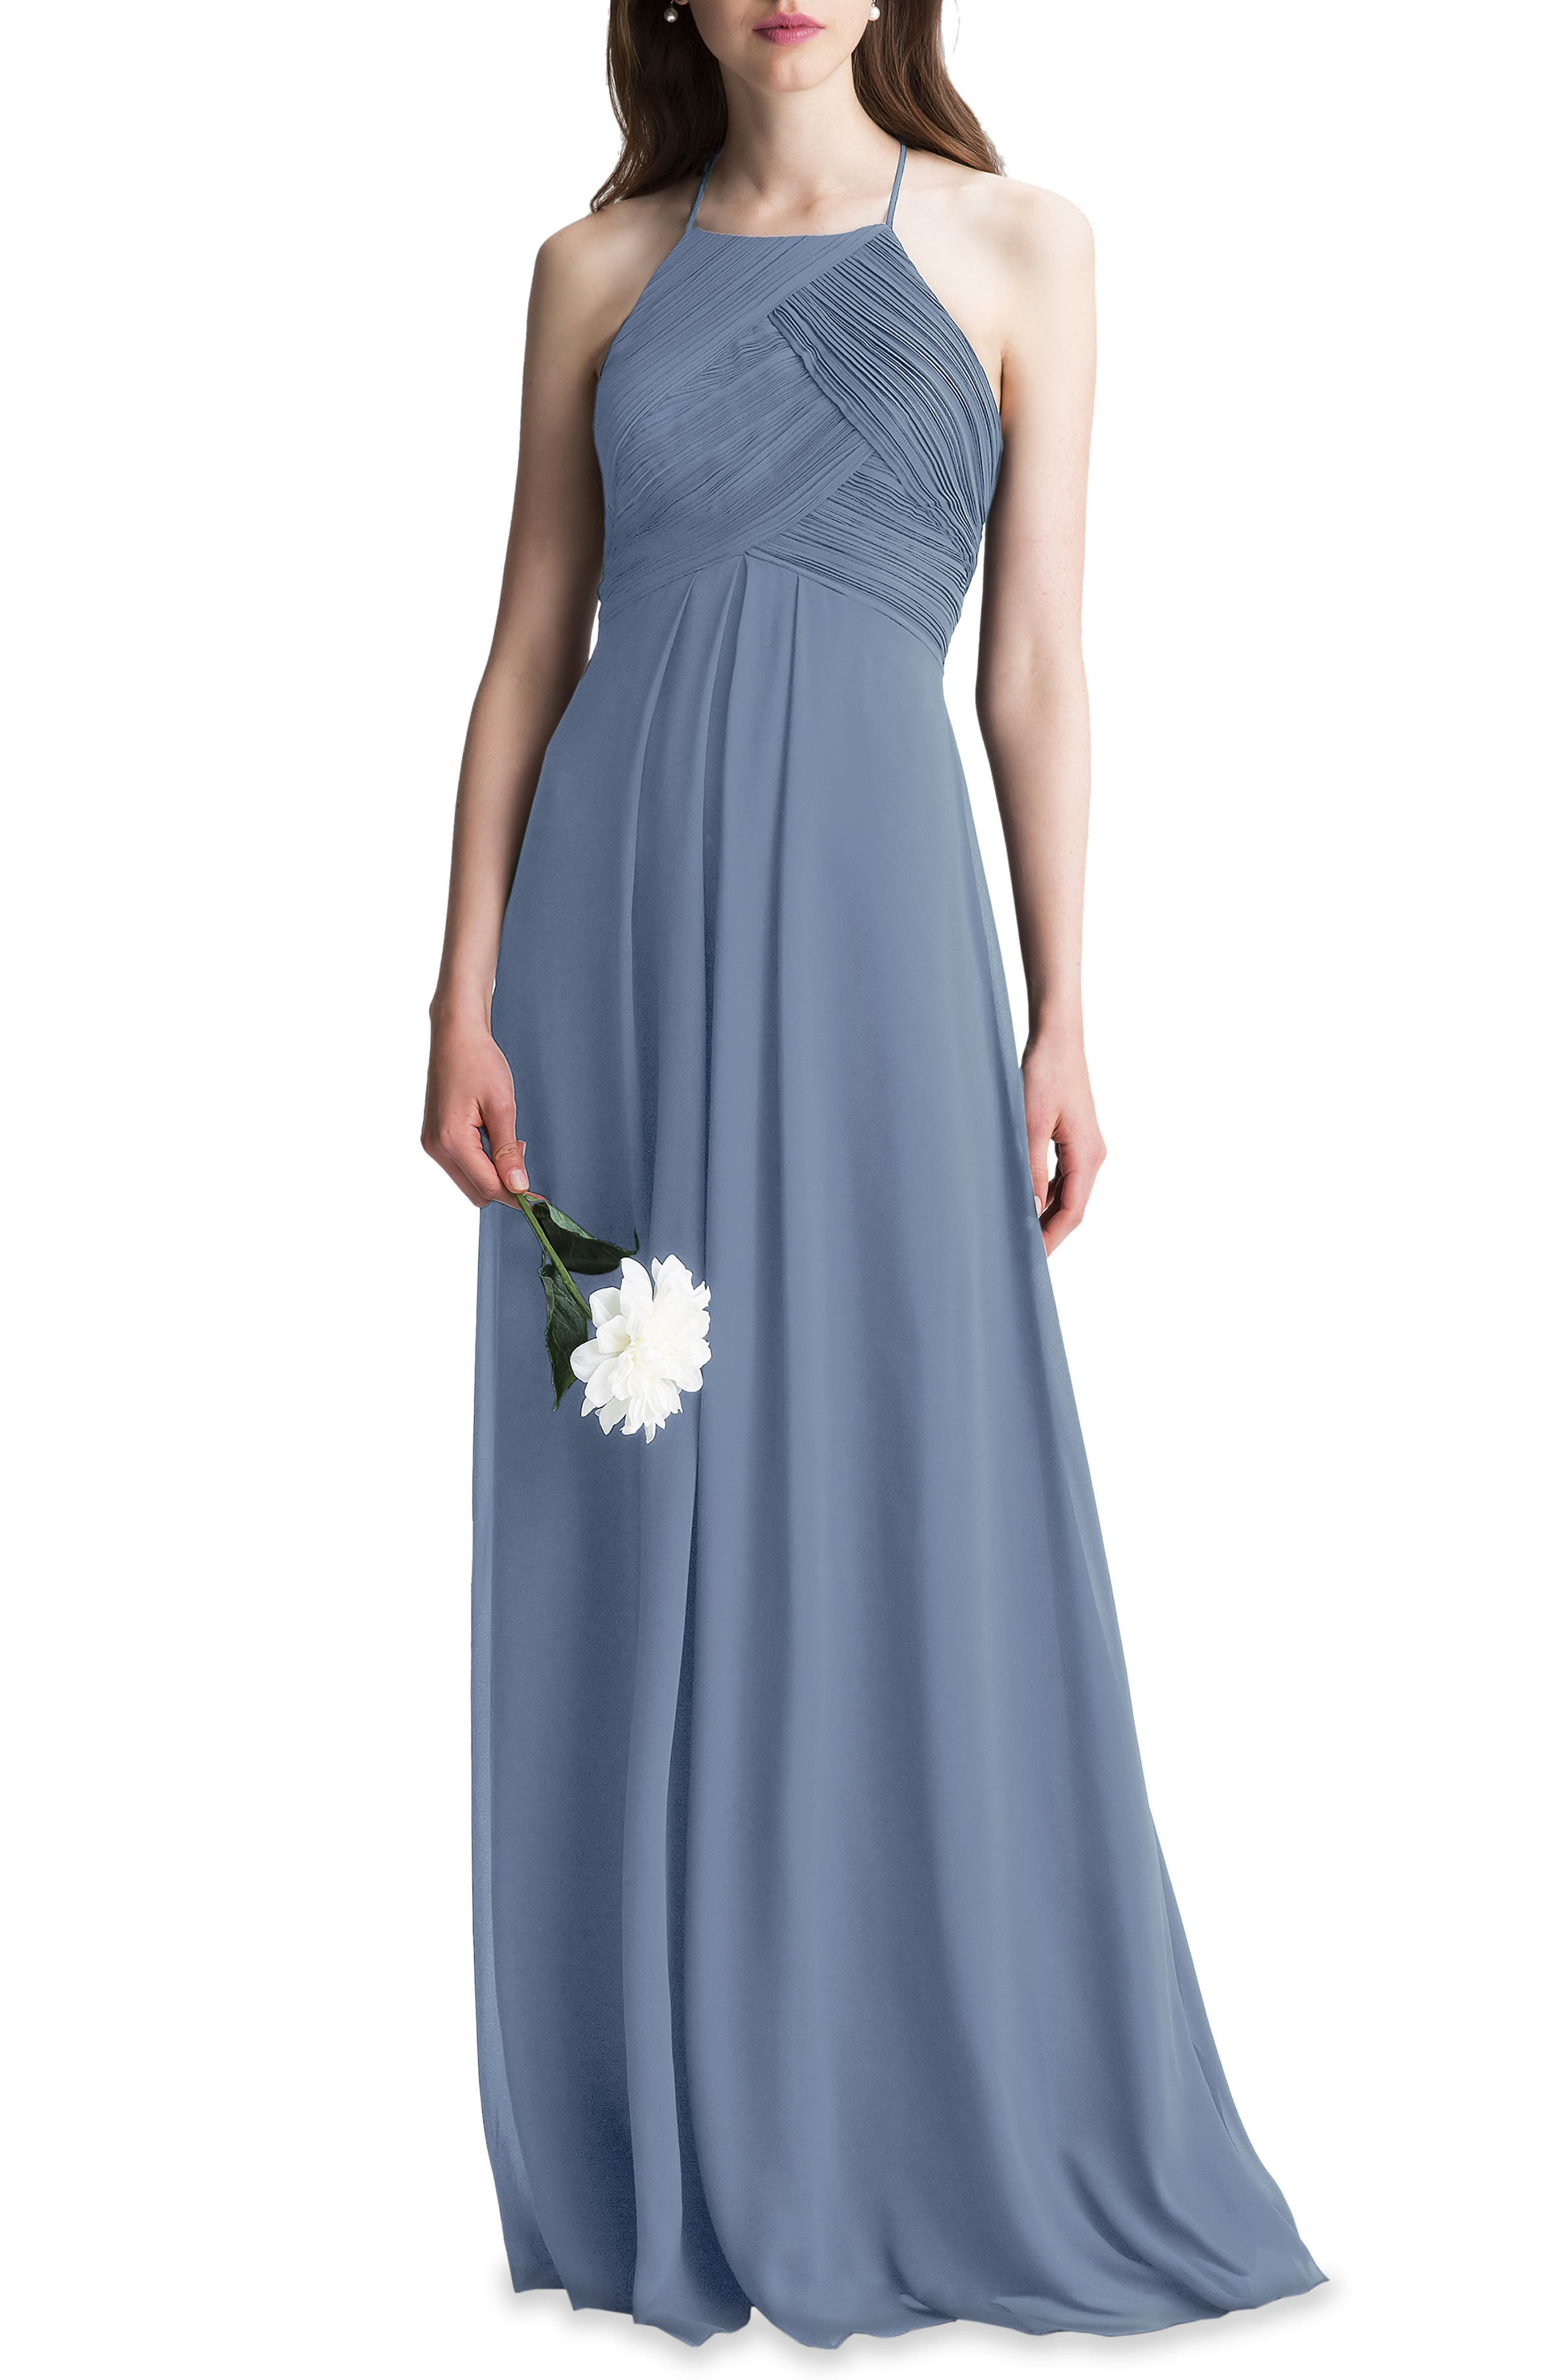 #LEVKOFF, Halter Chiffon A-Line Gown, Main thumbnail 1, color, SLATE